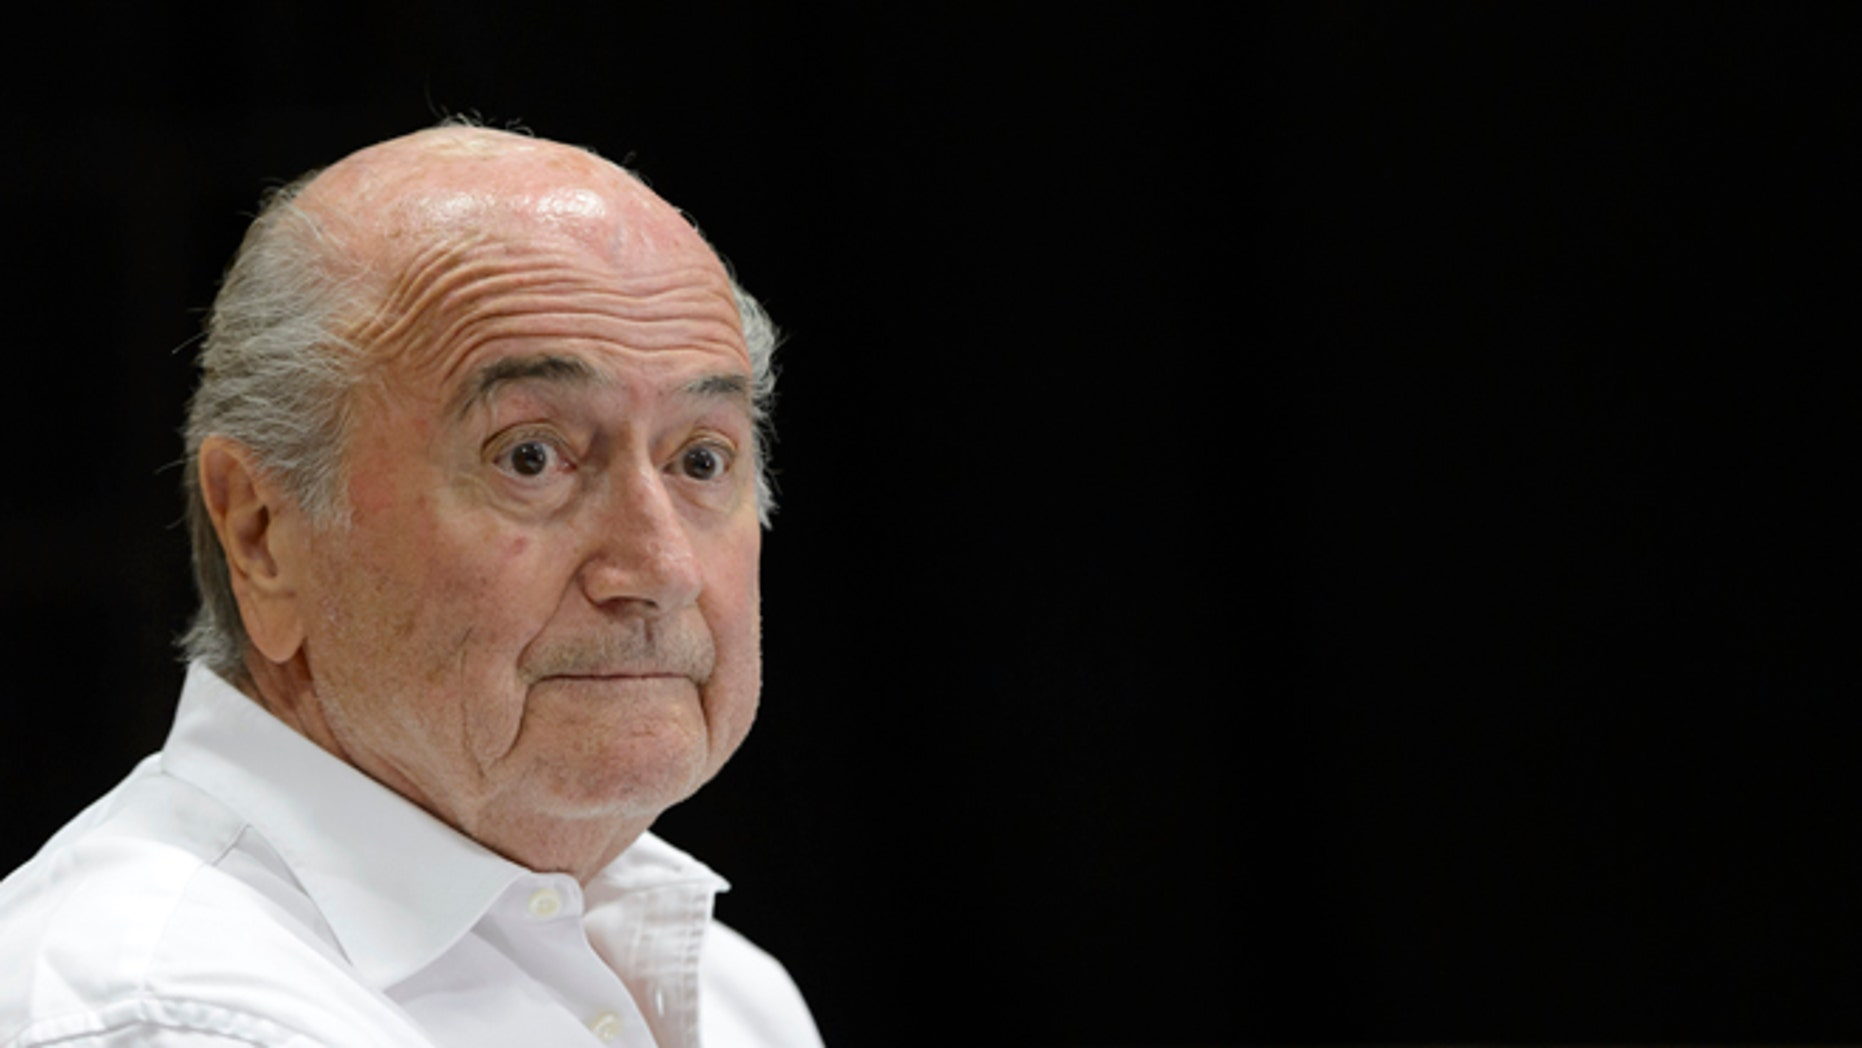 FILE - In this Aug. 22, 2015 file photo then FIFA President Sepp Blatter speaks during a news conference in Ulrichen, Switzerland. The FIFA ethics committee said Friday, Sept. 9, 2016 it opened formal proceedings against Blatter, former secretary general Jerome Valcke and former finance director Markus Kattner over million-dollar payments in their contracts â some of which were approved by other senior FIFA officials. (Laurent Gillieron/Keystone via AP, file)